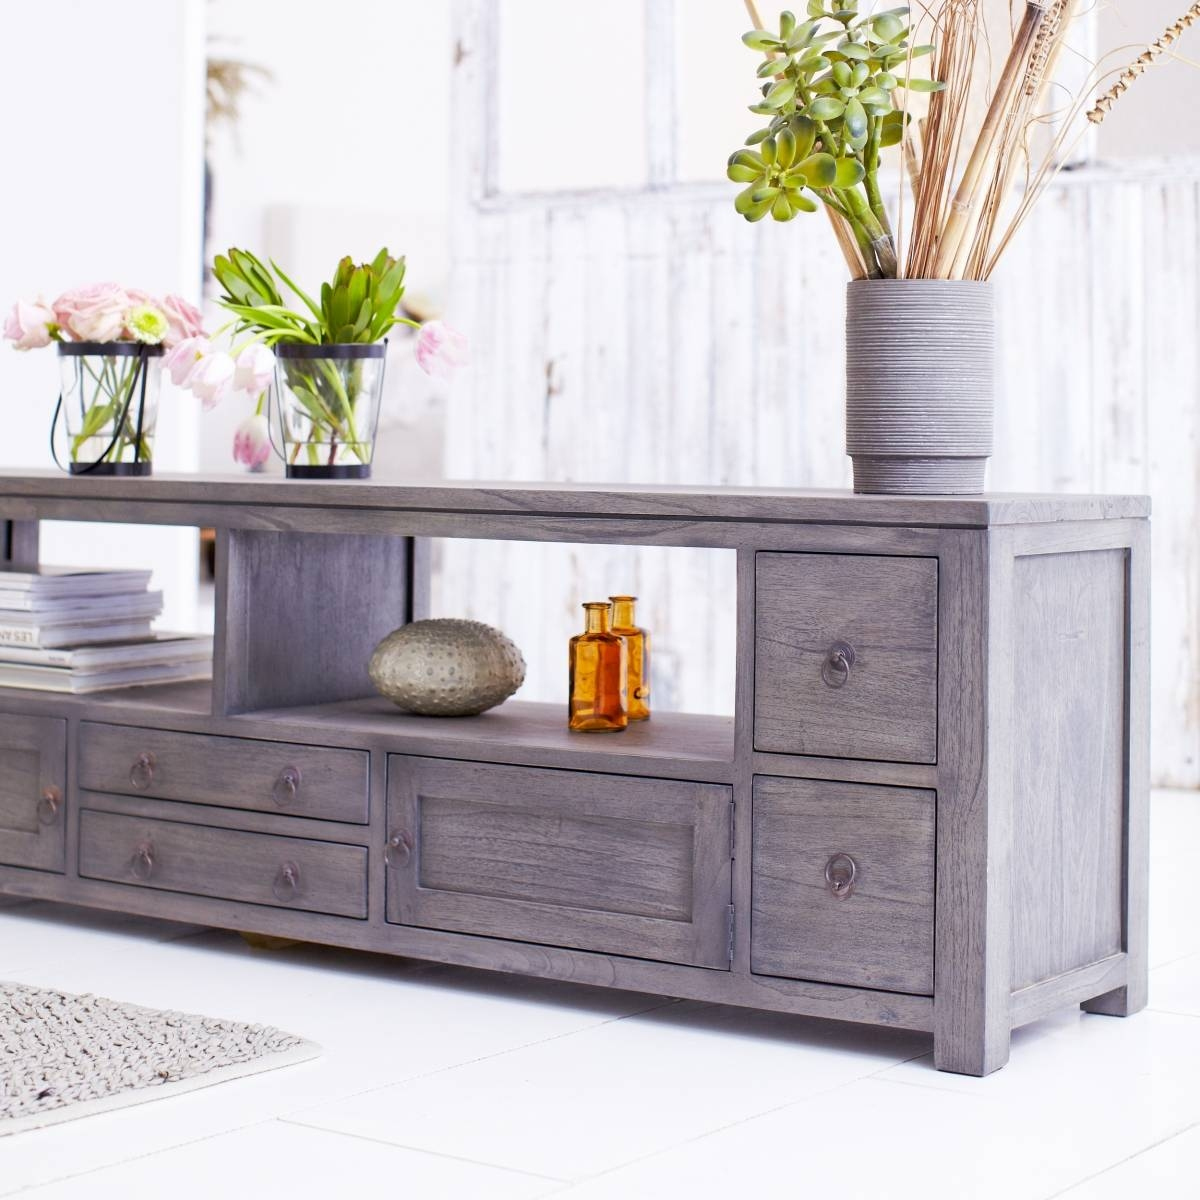 Solid Grey Tv Stand : How To Make Grey Tv Stand – Indoor & Outdoor inside Grey Wood Tv Stands (Image 7 of 15)